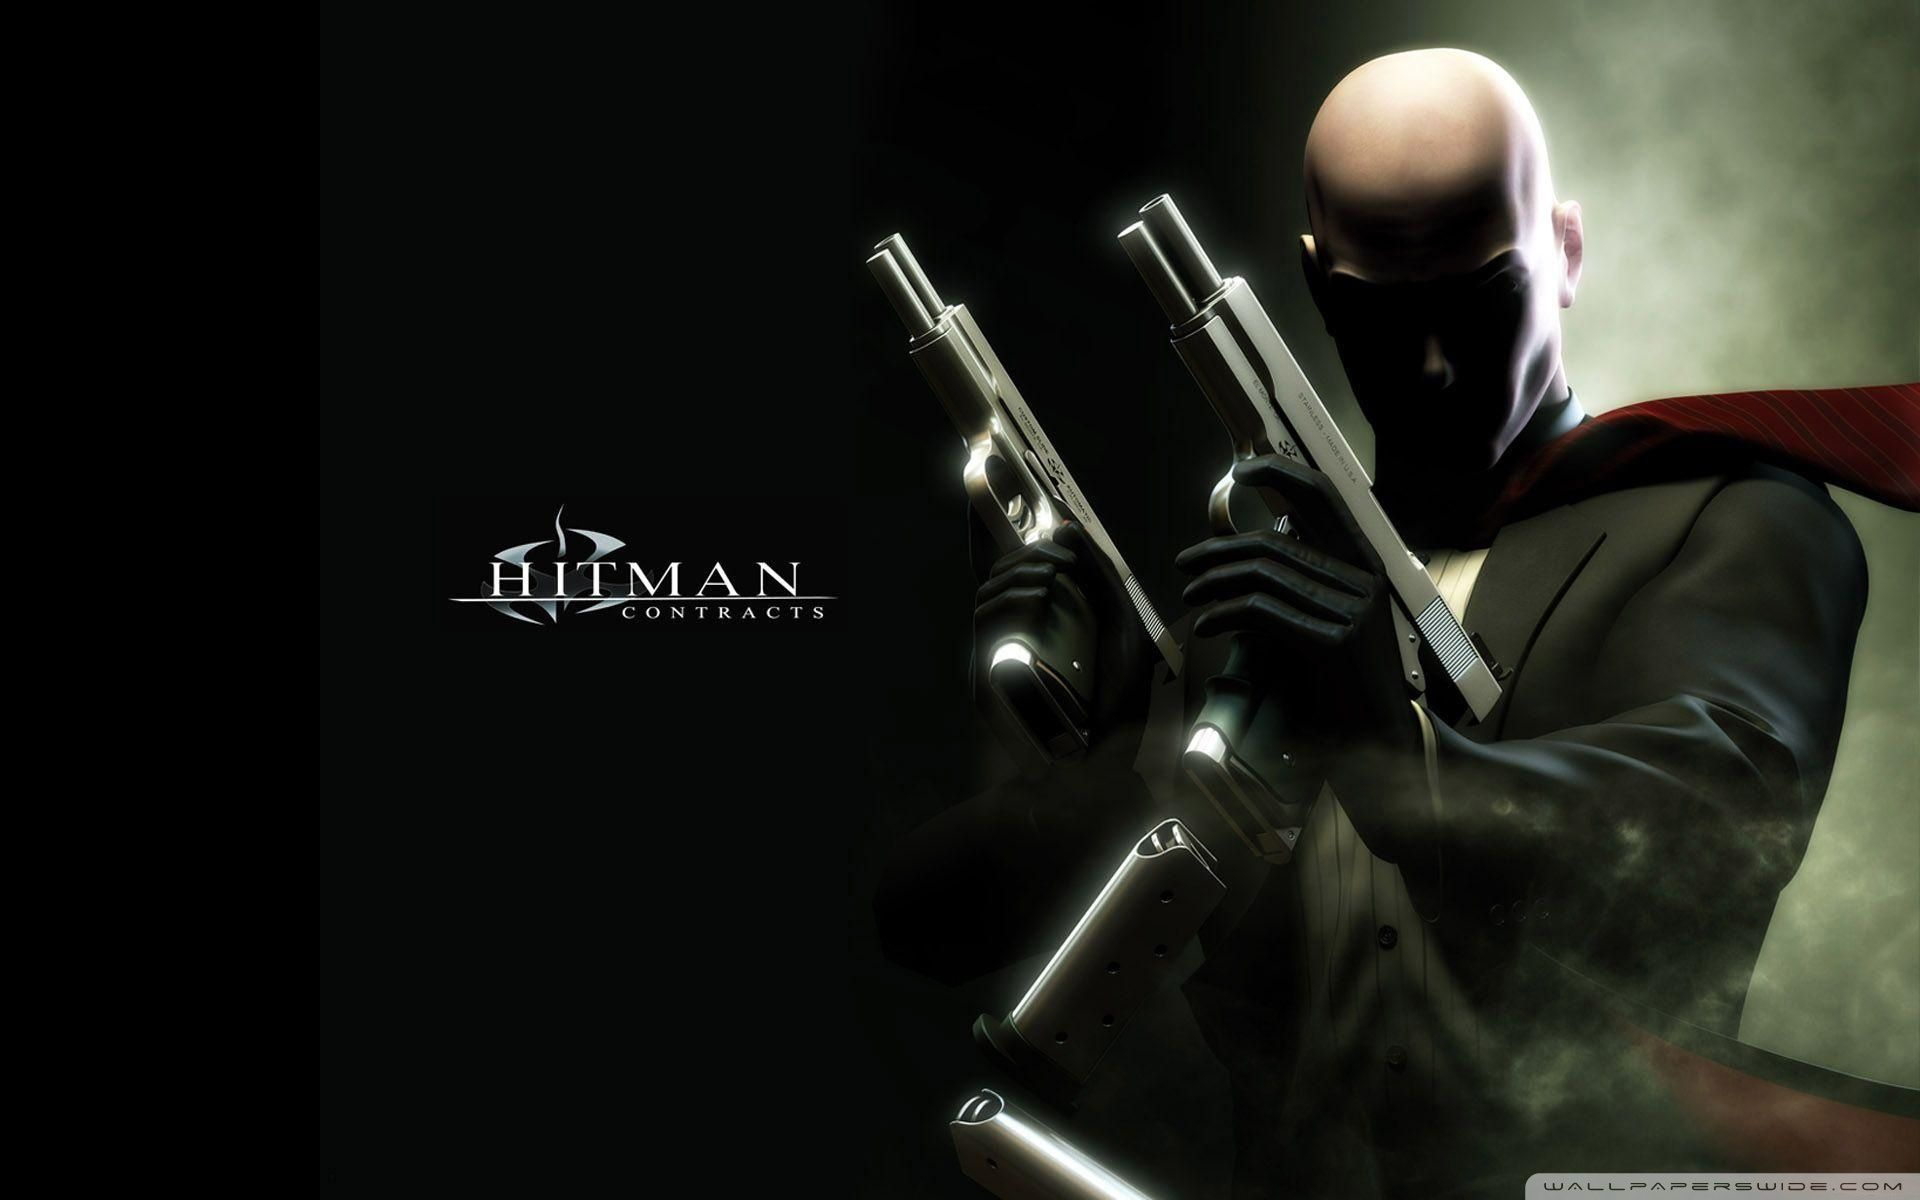 Hitman 2 Wallpapers - Top Free Hitman 2 Backgrounds